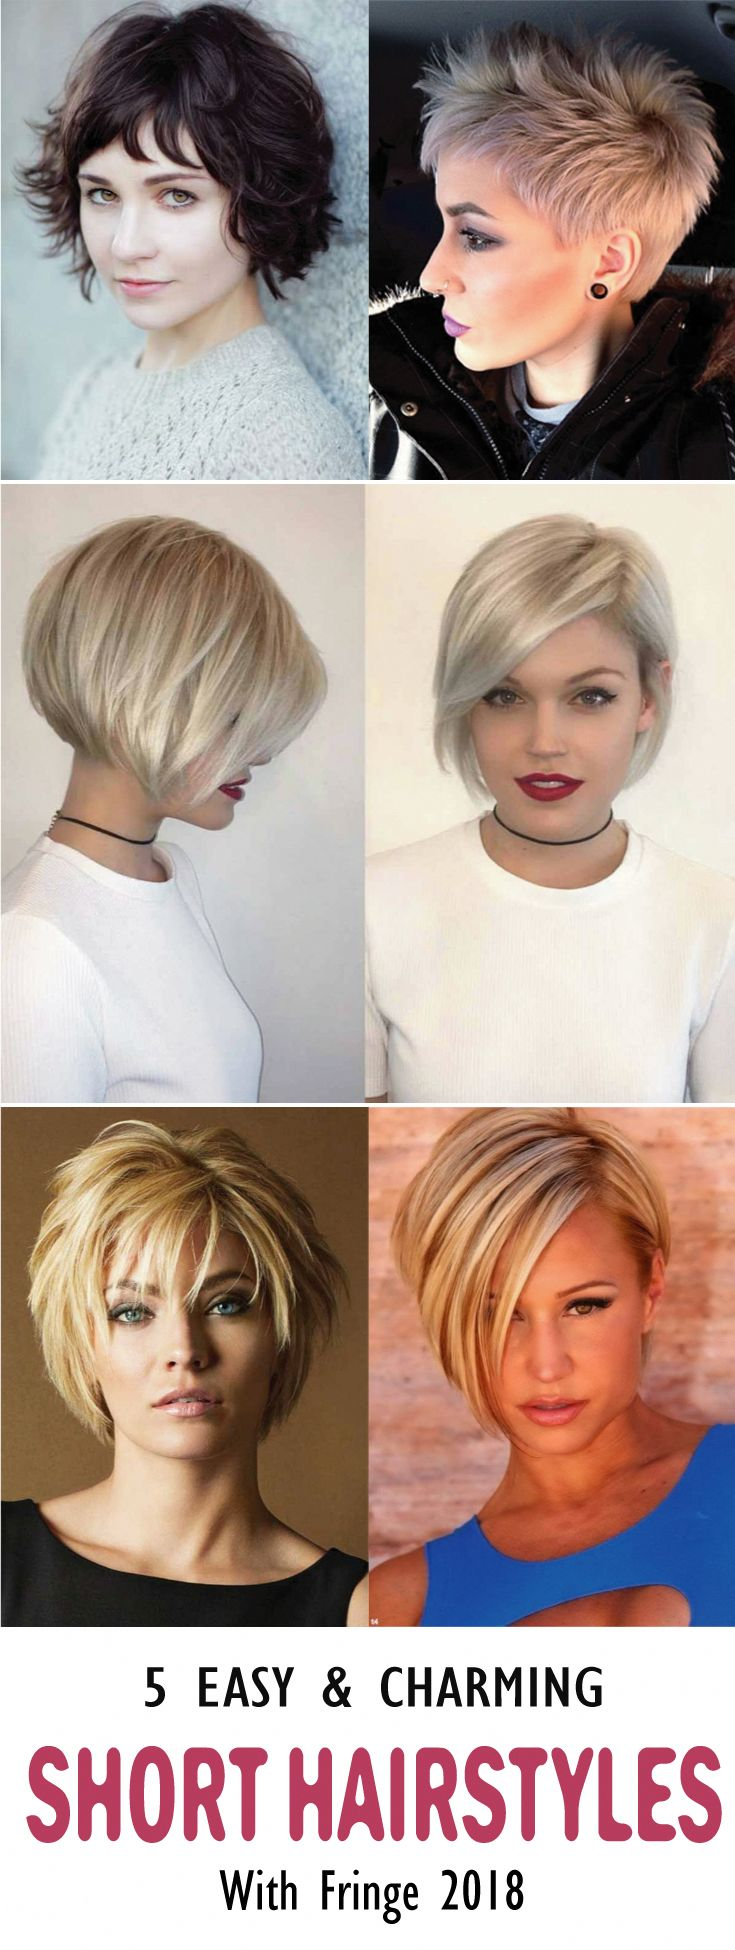 this natural braids hairstyle with the bangs can work in protective hairdos as long as you don't use curling and flat irons. You can use flexi rods,...